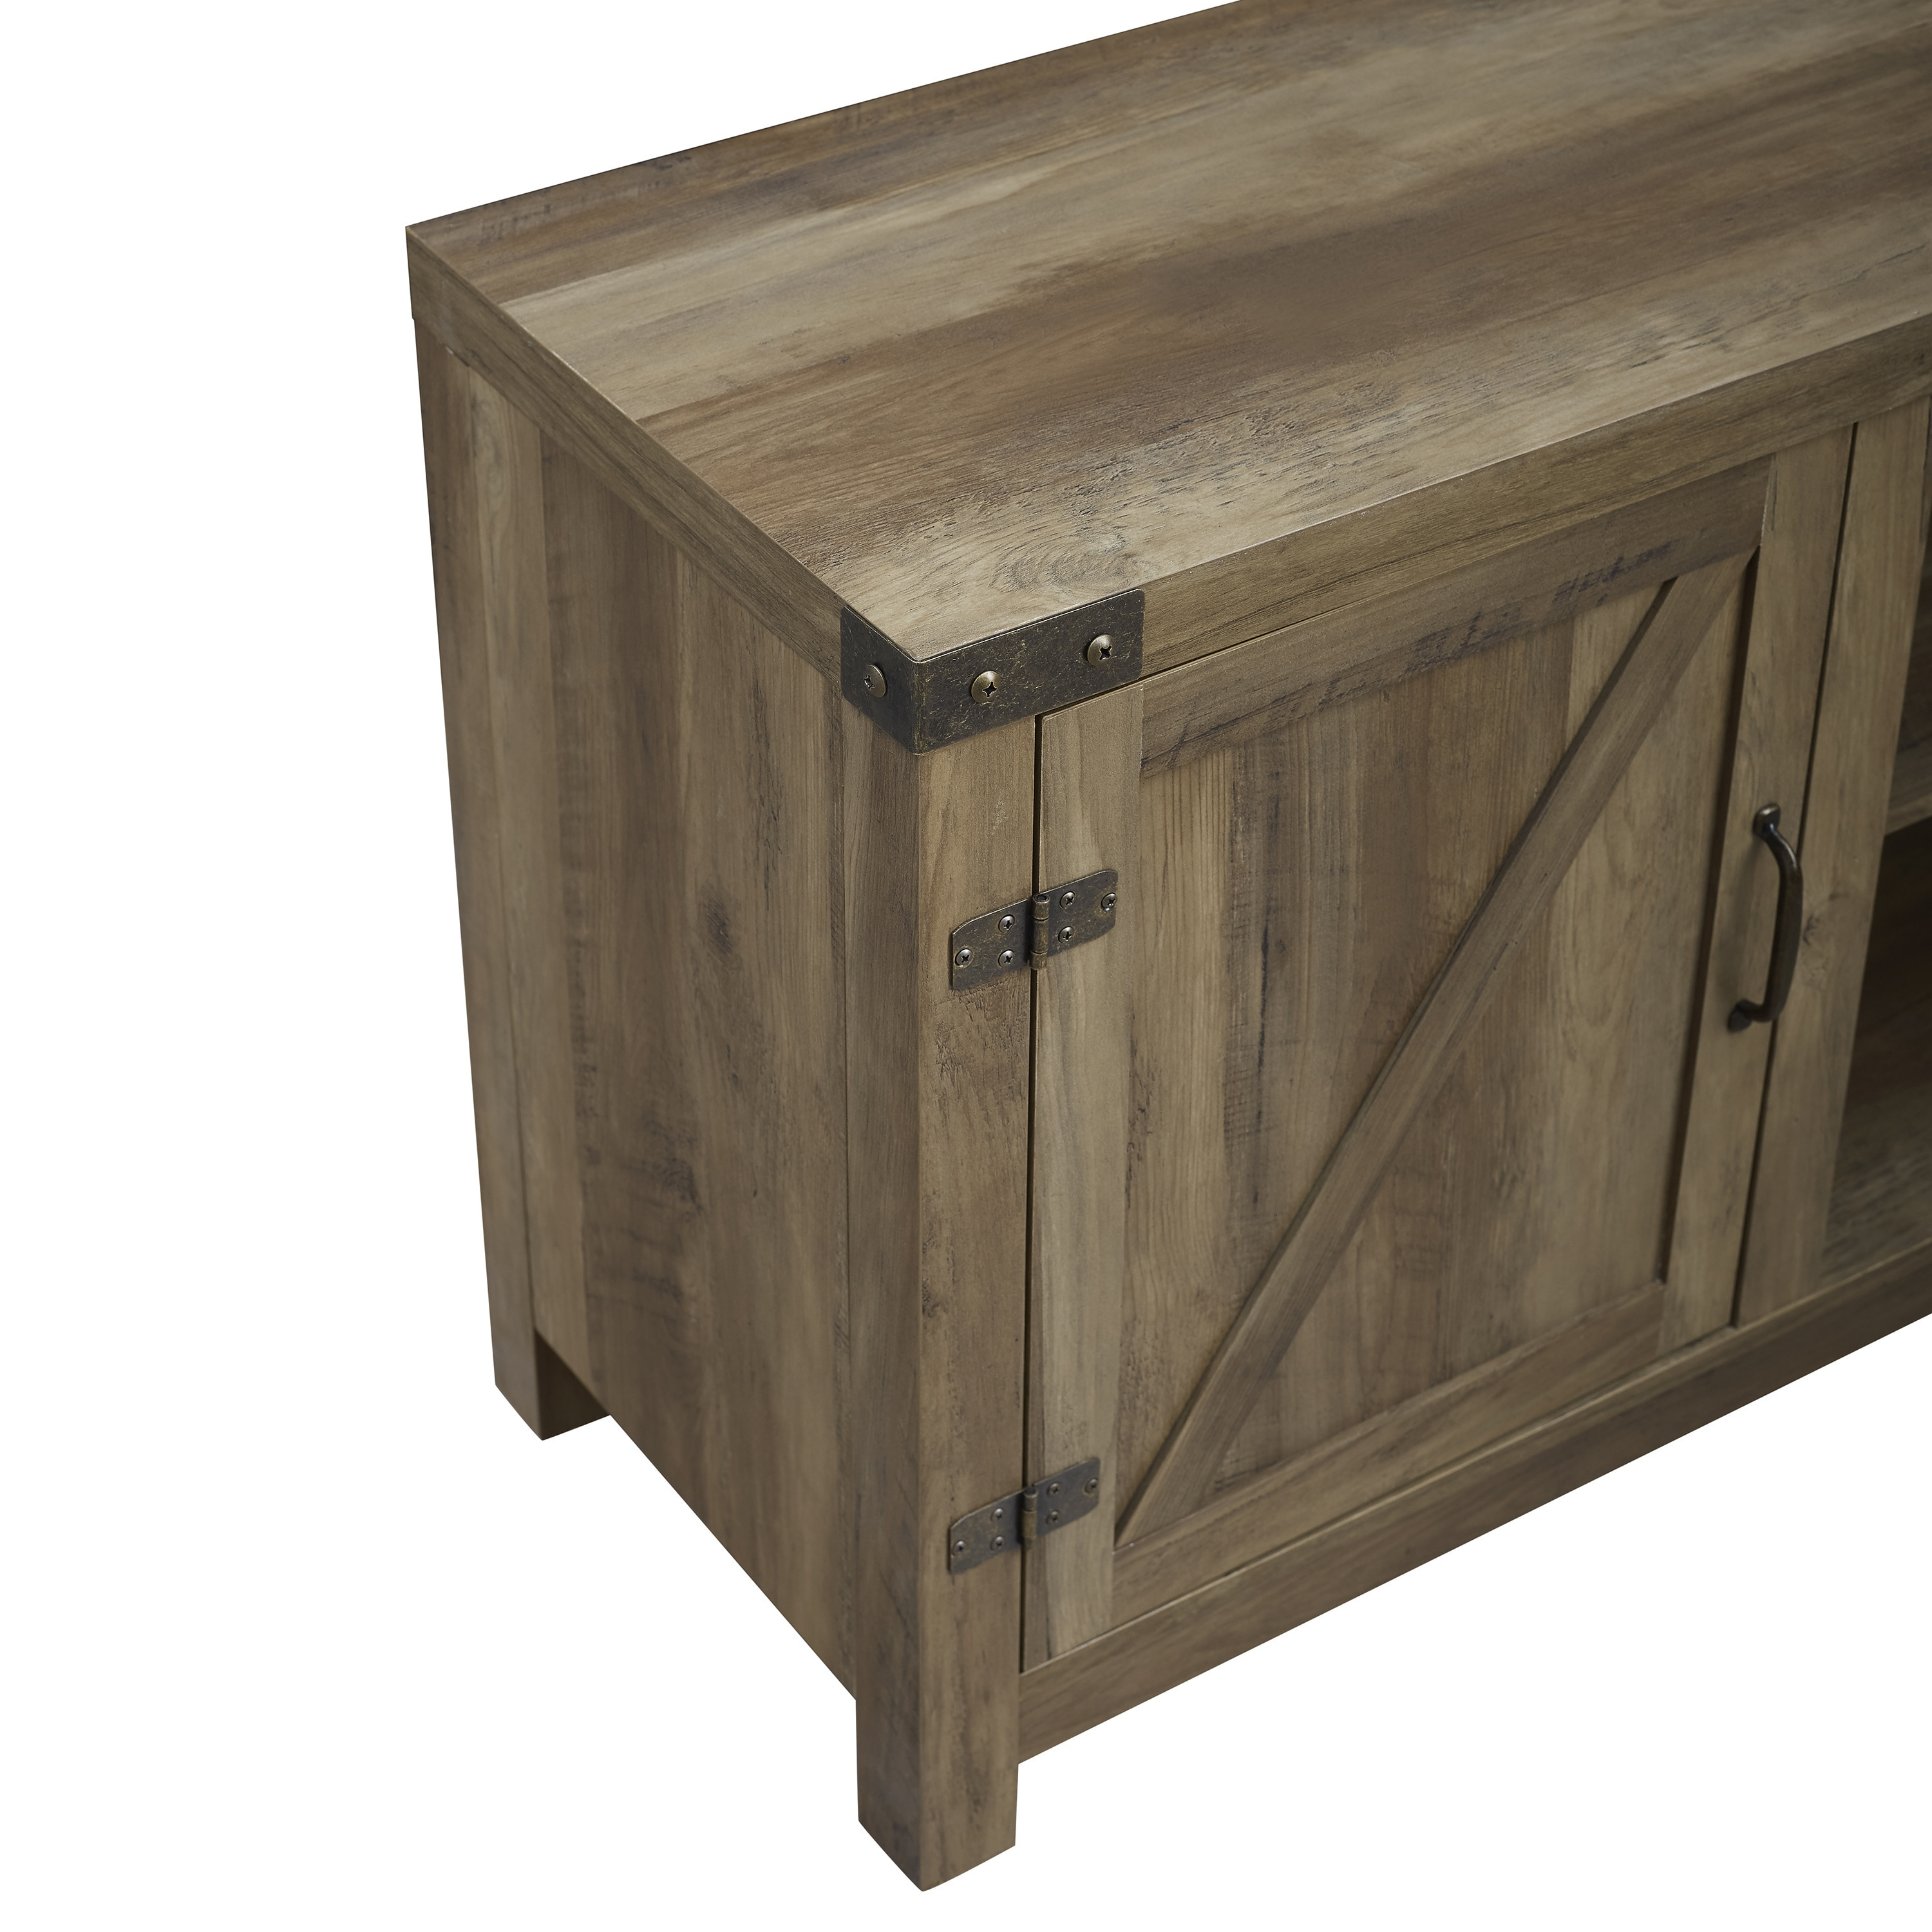 The Gray Barn Firebranch Barn Door TV Stand with Doors - Free Shipping Today - Overstock.com - 20492980  sc 1 st  Overstock & The Gray Barn Firebranch Barn Door TV Stand with Doors - Free ...